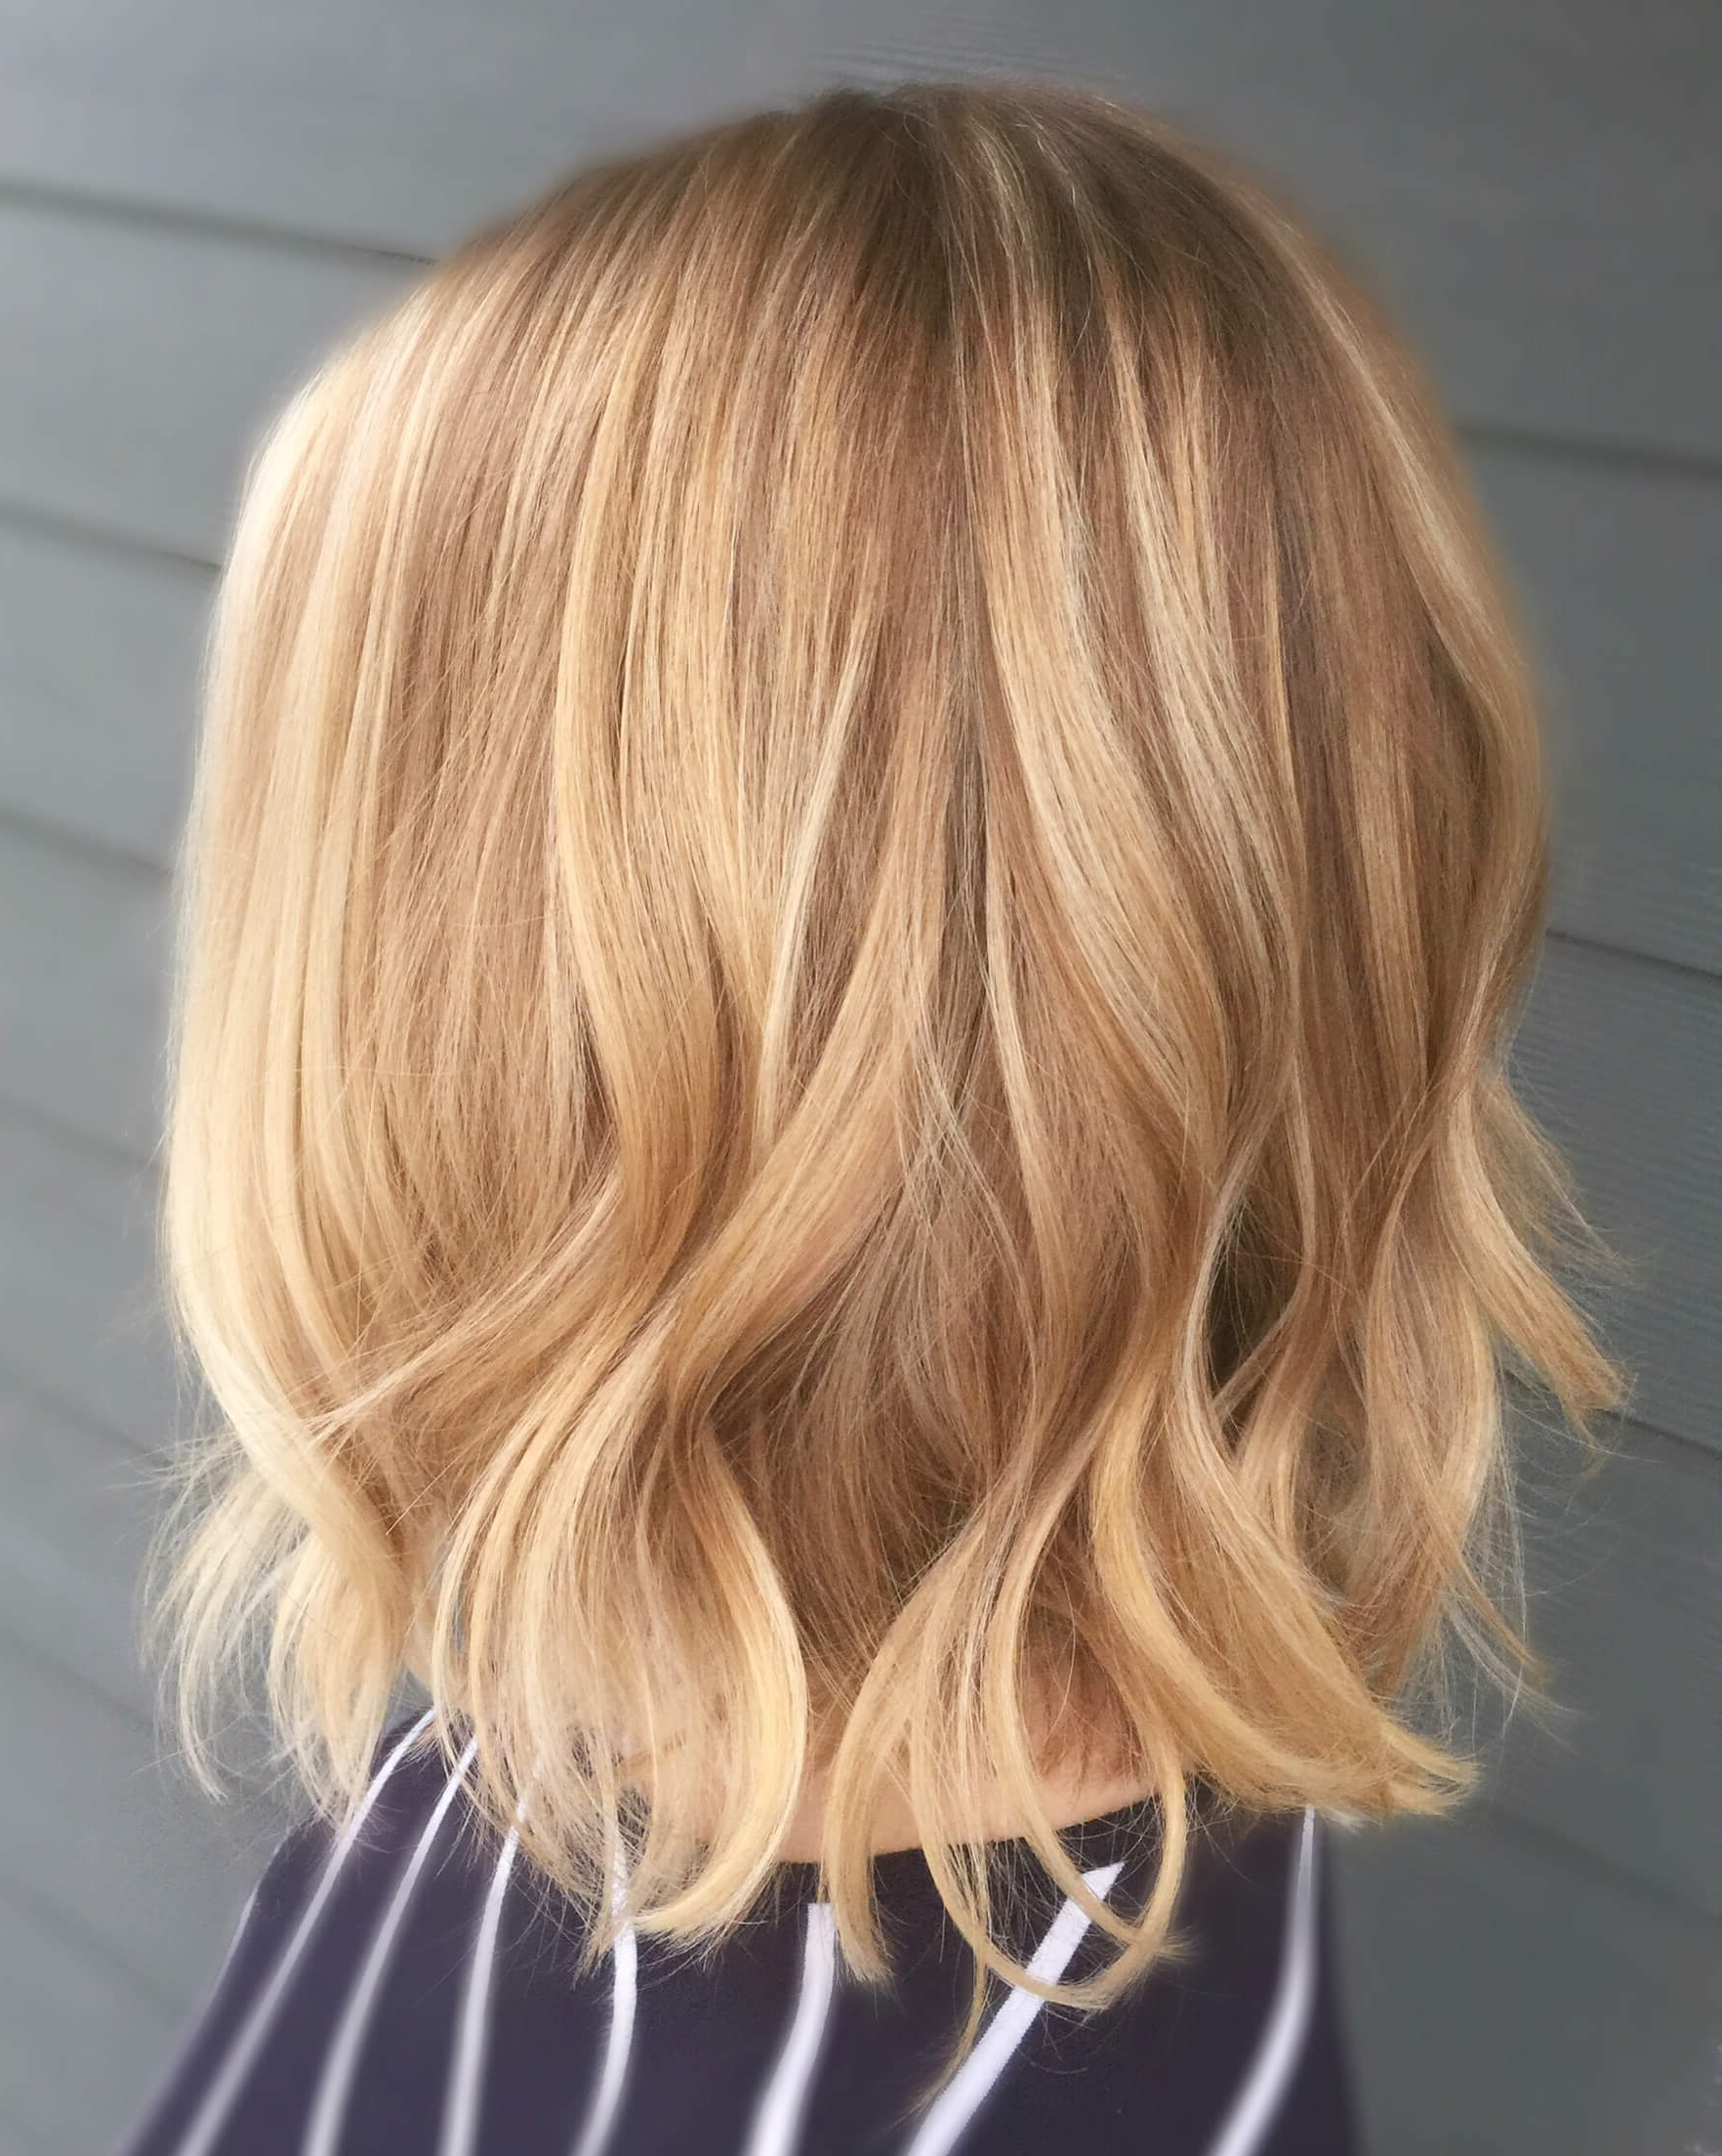 25 Honey Blonde Haircolor Ideas That Are Simply Gorgeous In Well Known Butterscotch Blonde Hairstyles (View 3 of 20)